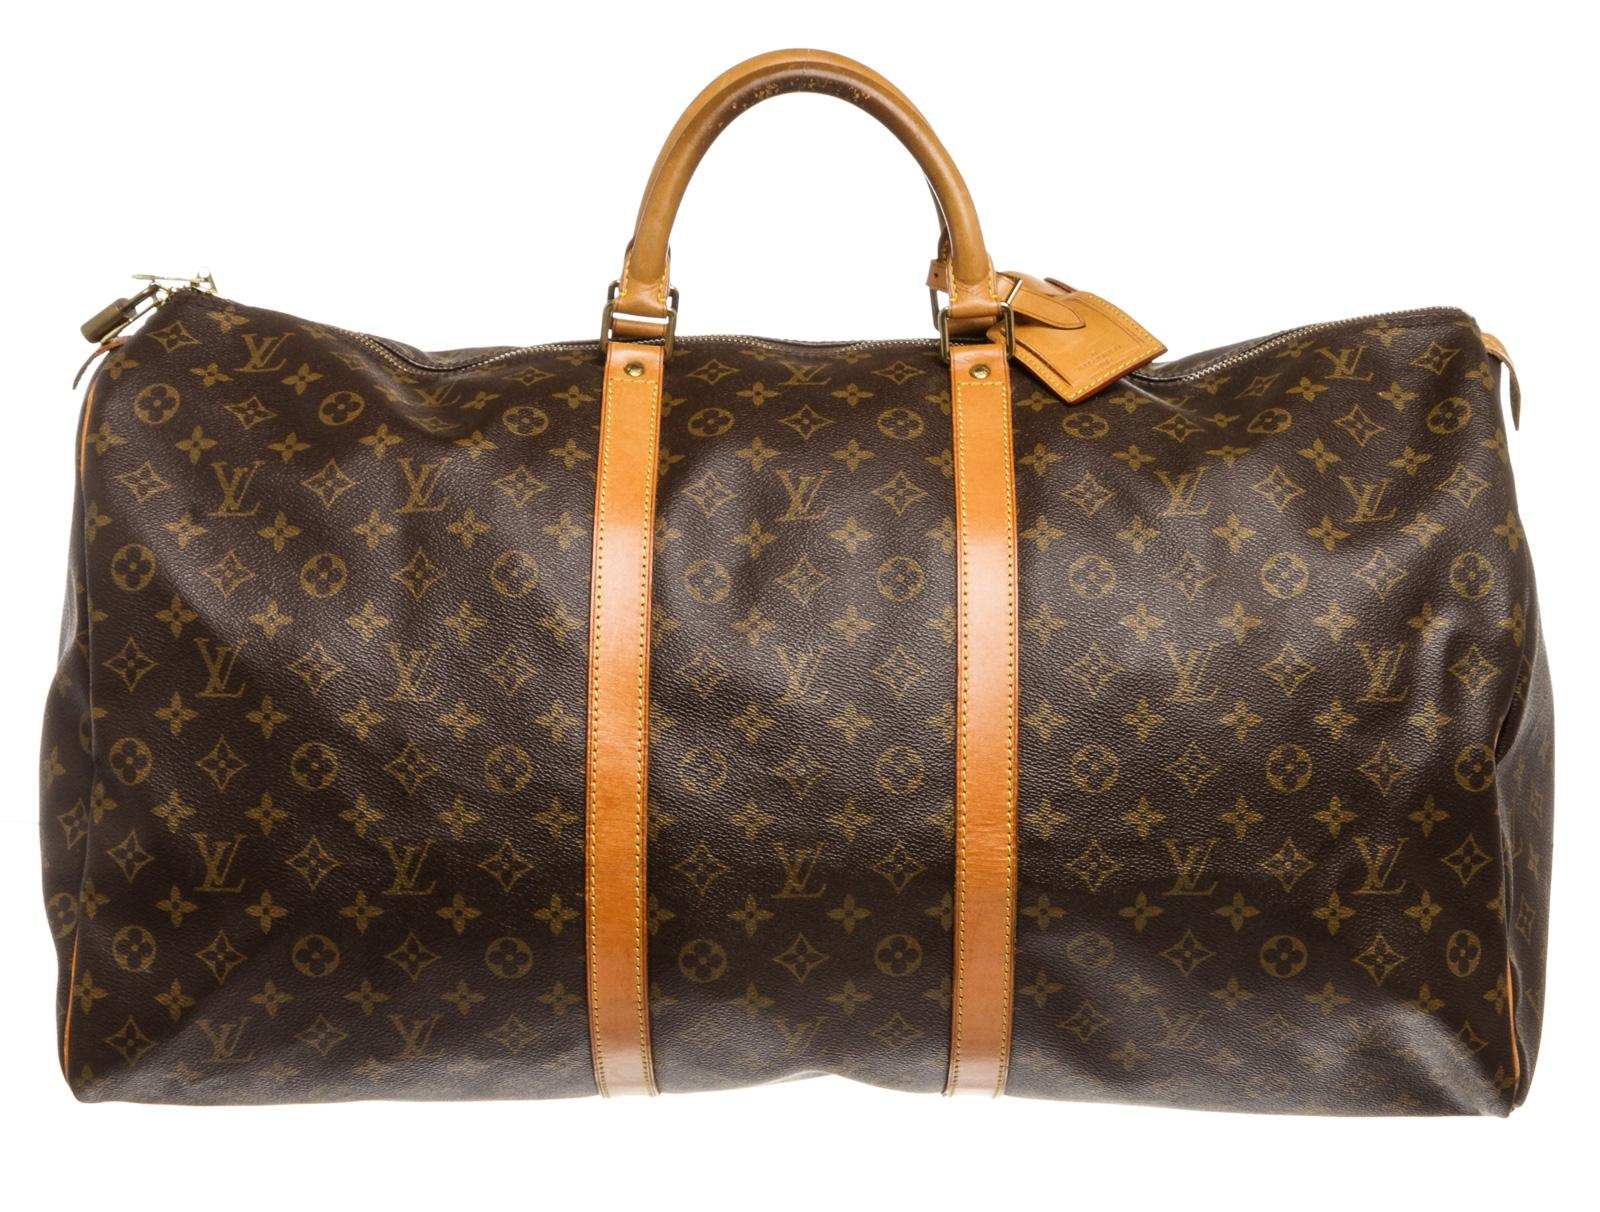 louis vuitton overnight bag. louis vuitton brown travel bag overnight